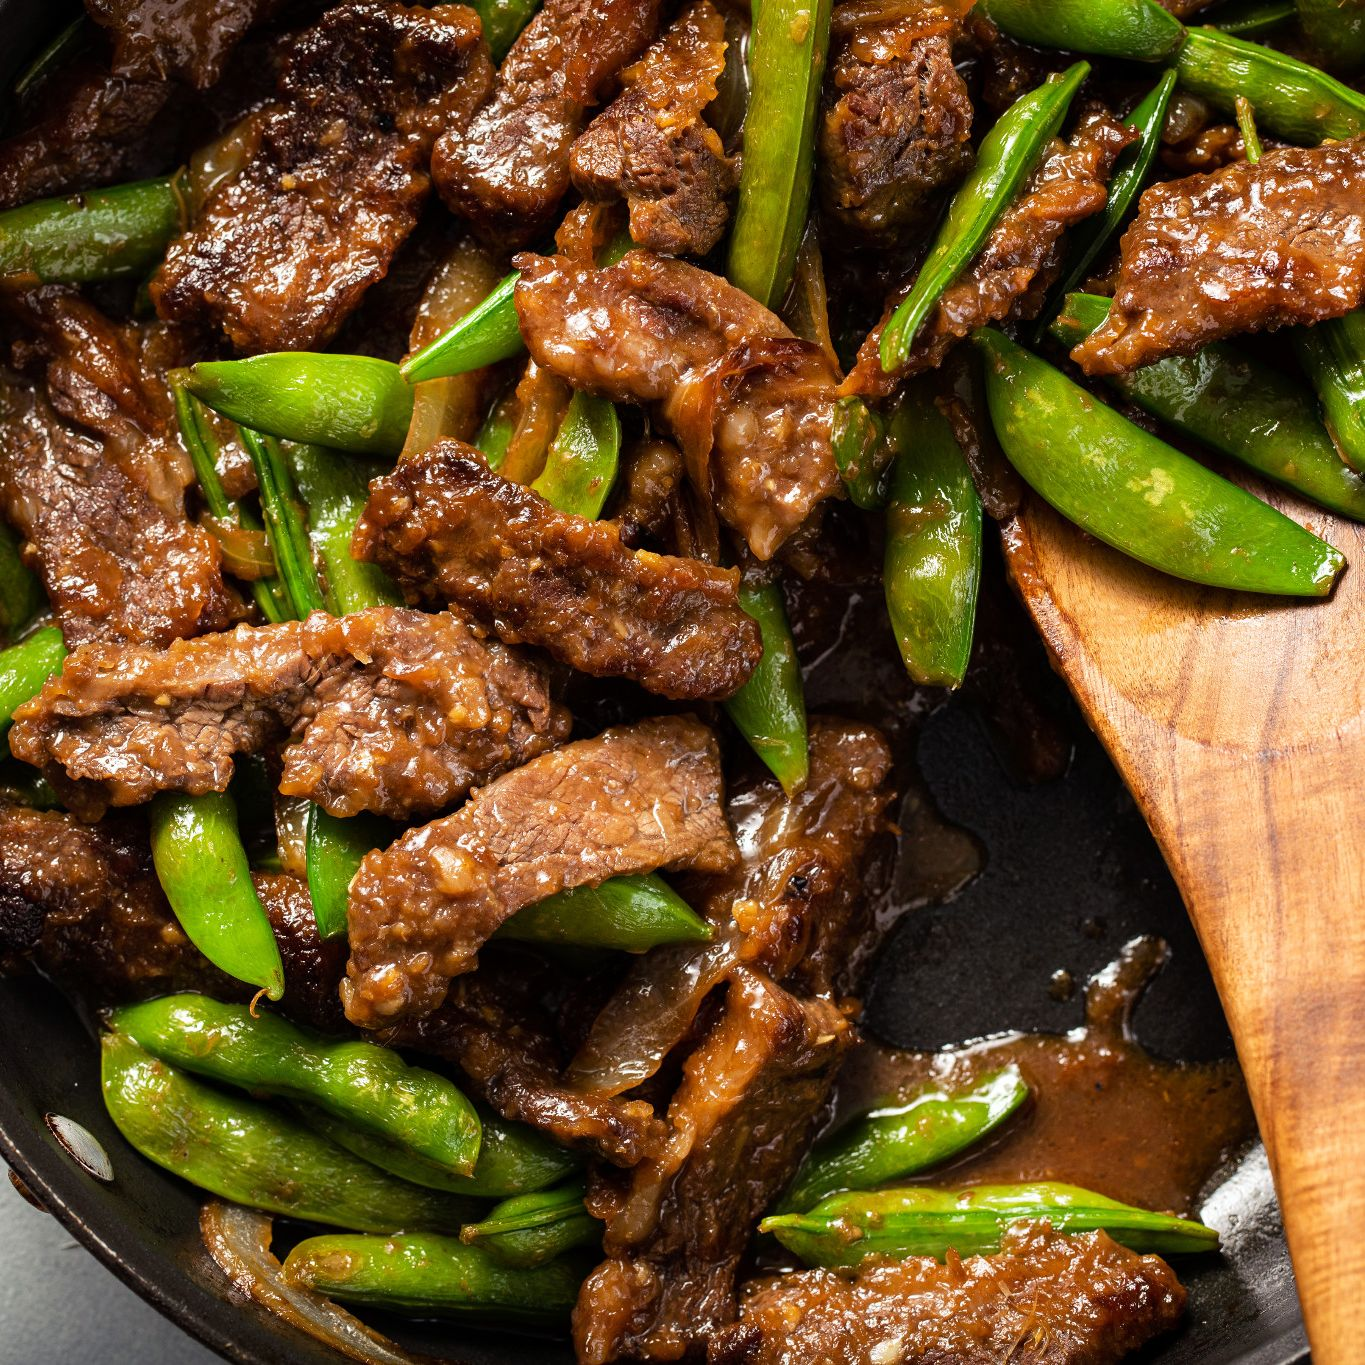 Steak and Sugar Snap Peas in Ginger Sauce